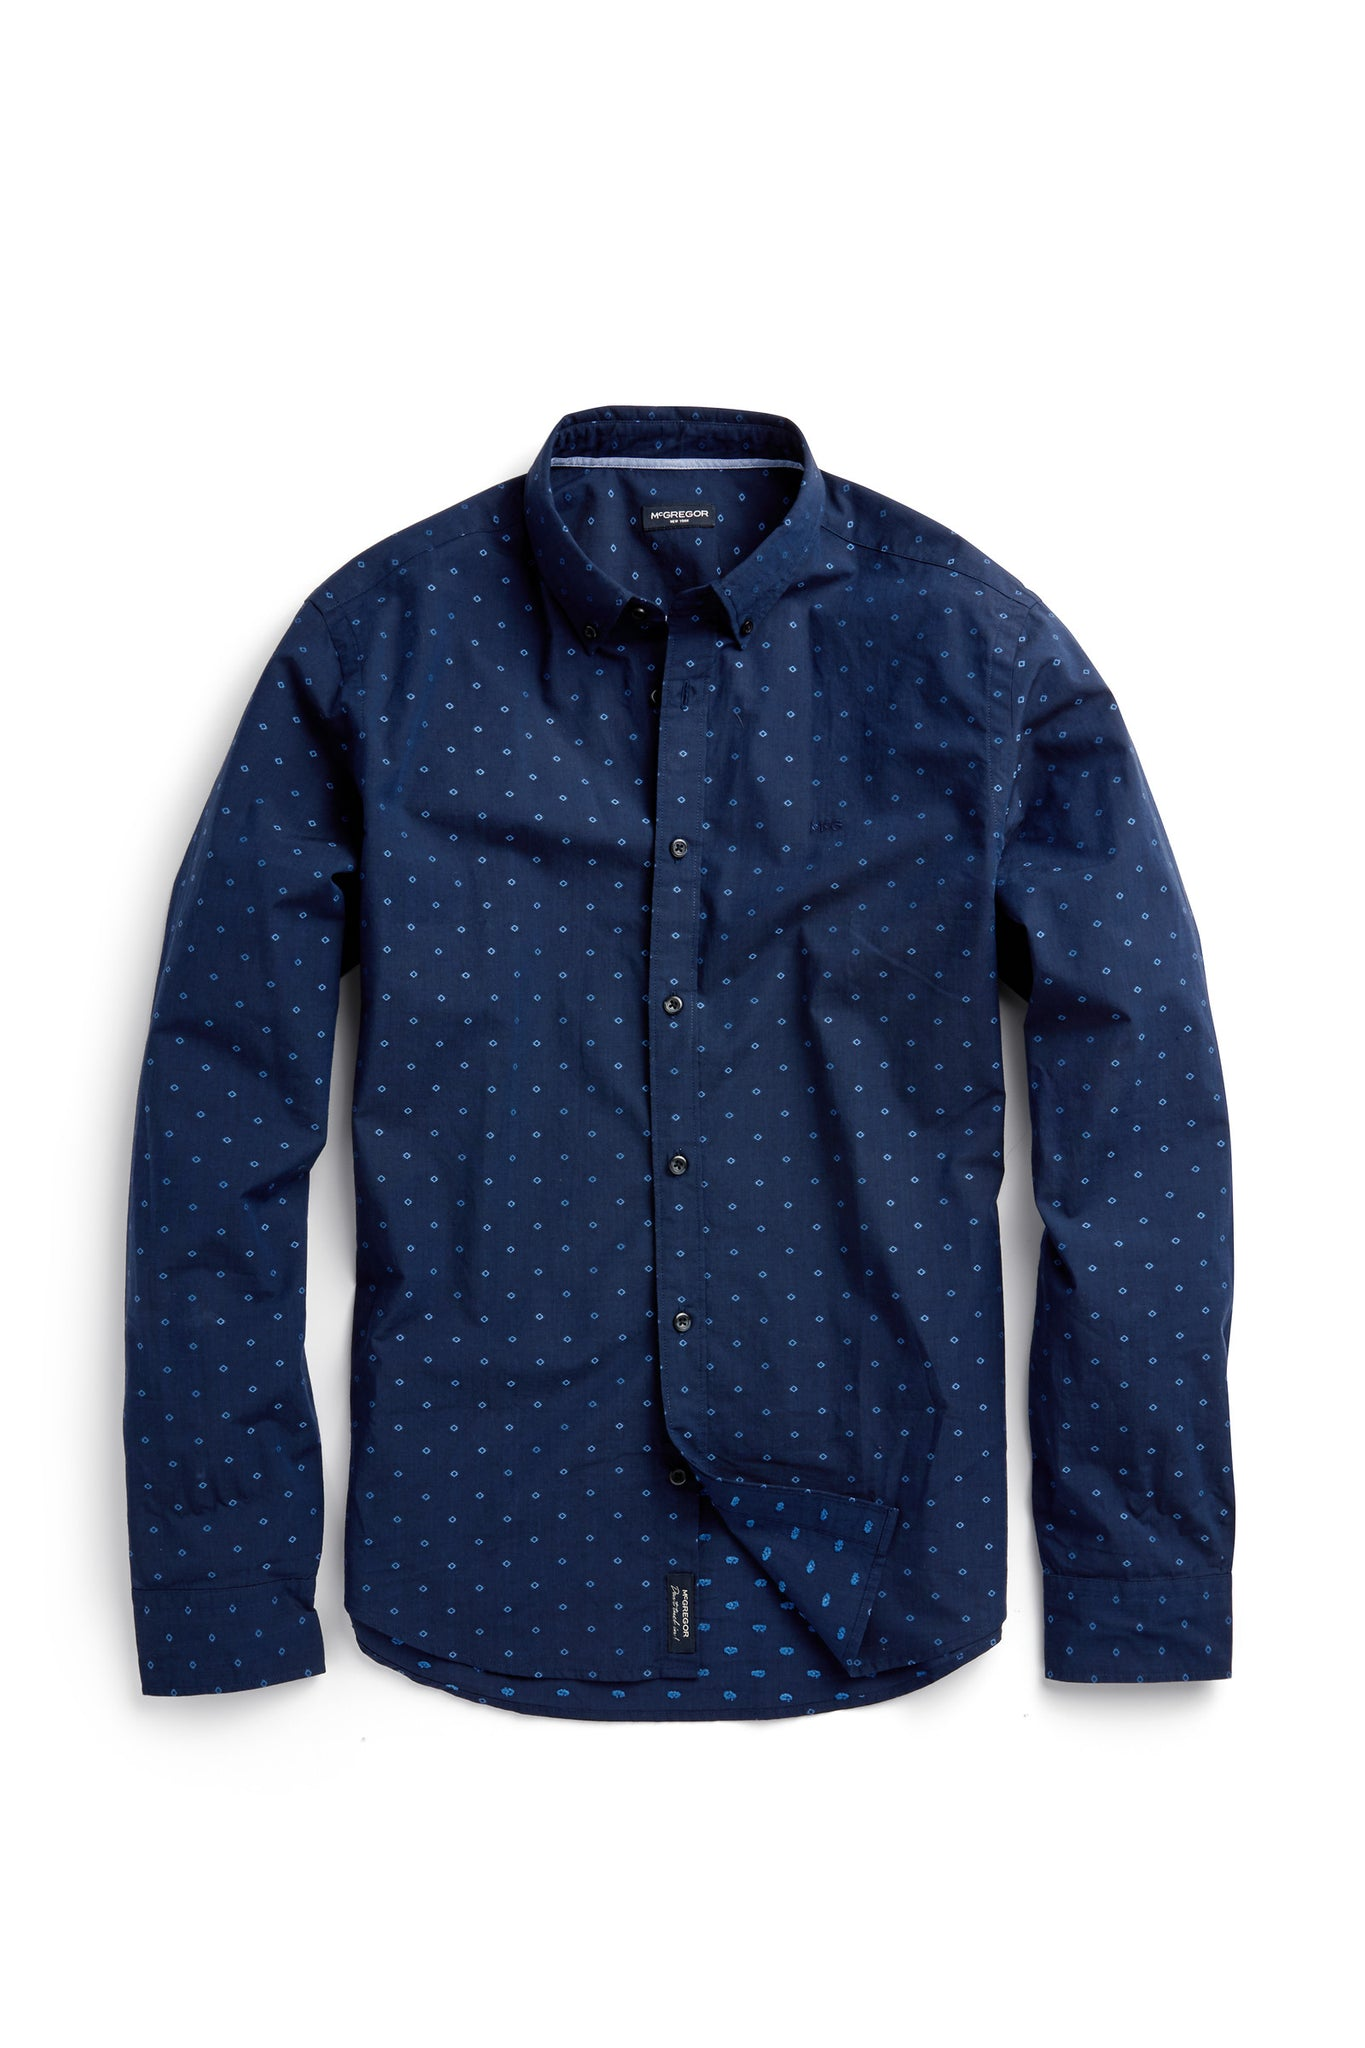 Cotton Jacquard Shirt Regular Fit